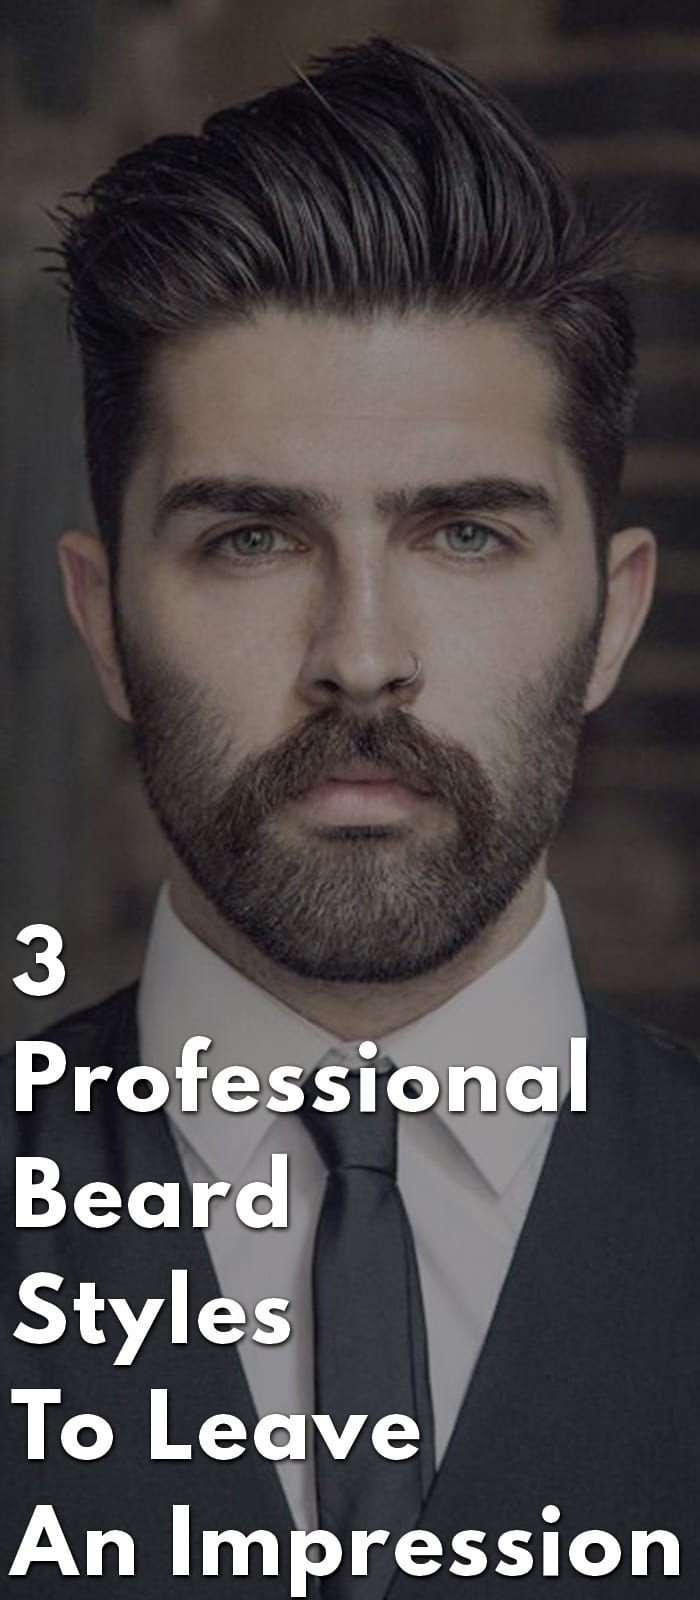 3-Professional-Beard-Styles-To-Leave-An-Impression